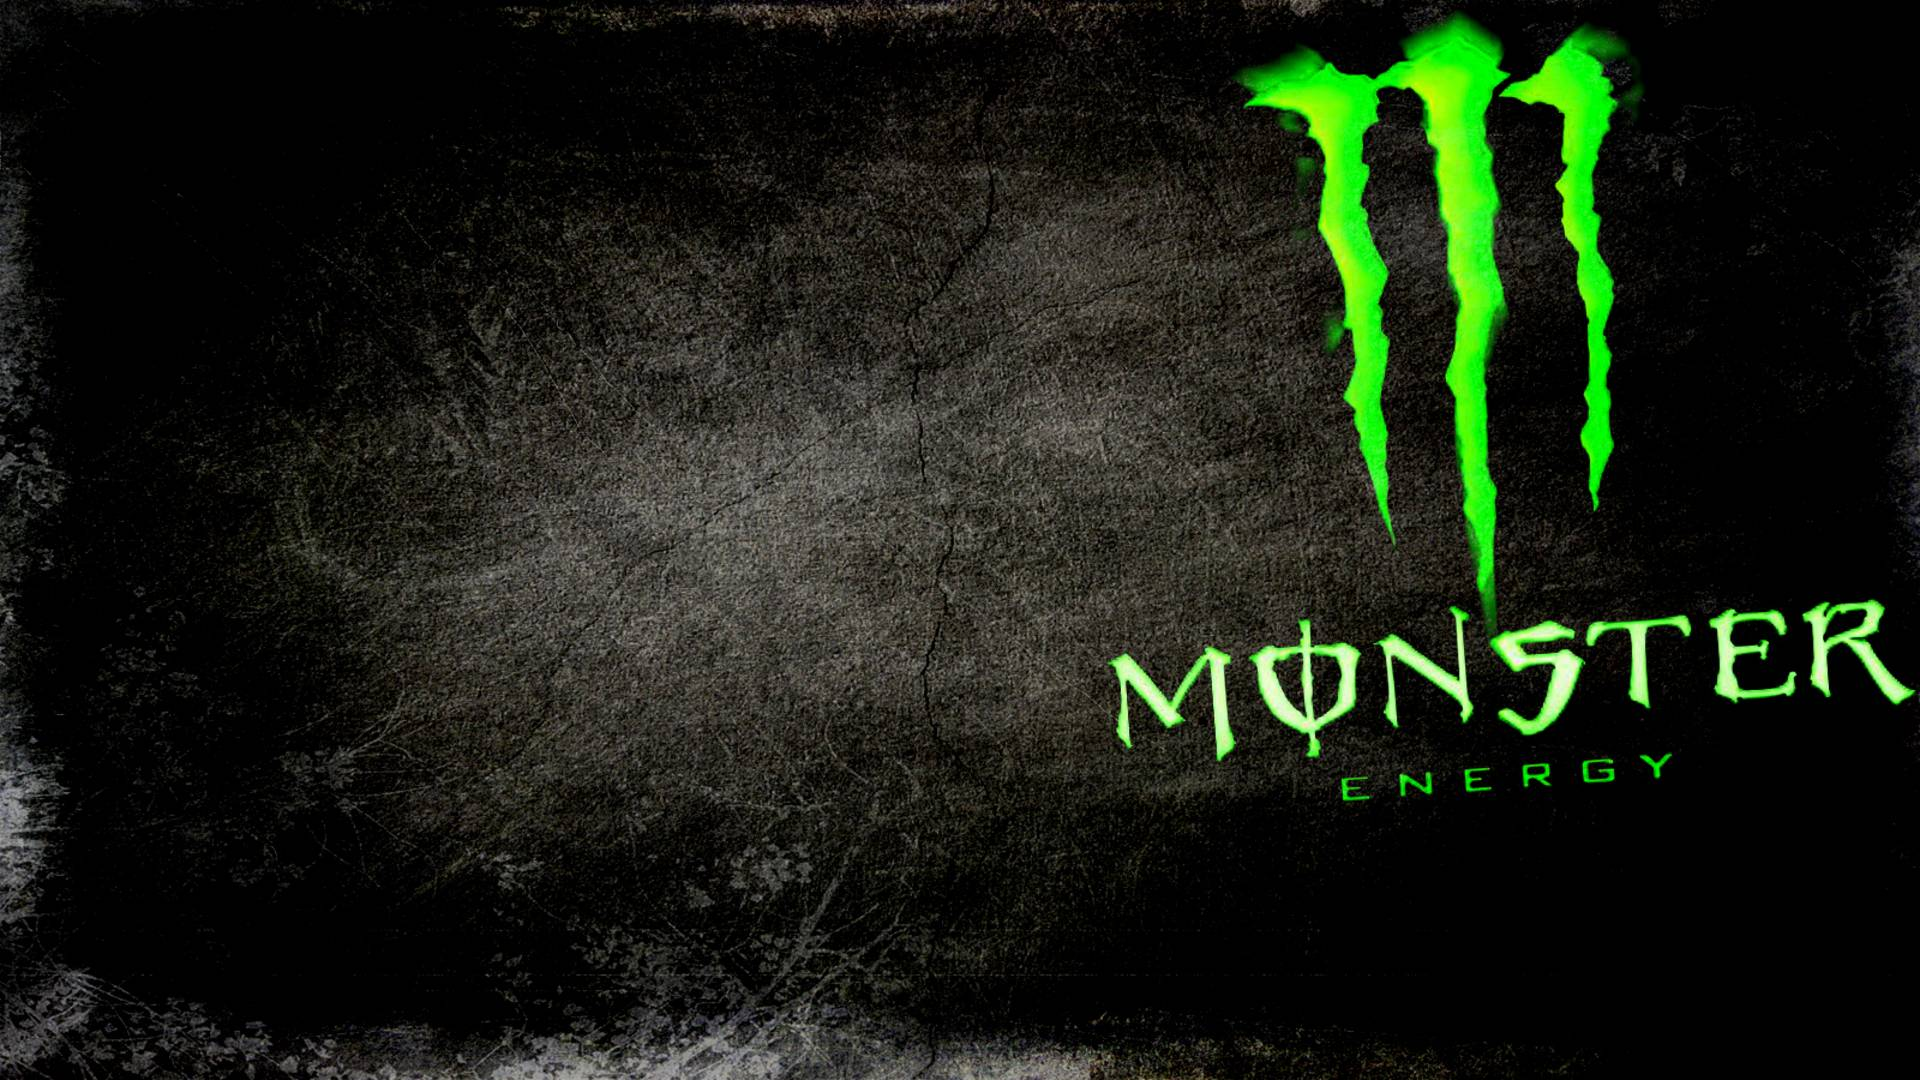 Monster energy wallpapers hd 2015 wallpaper cave 1588723 monster energy wallpapers hd free wallpapers backgrounds download voltagebd Images